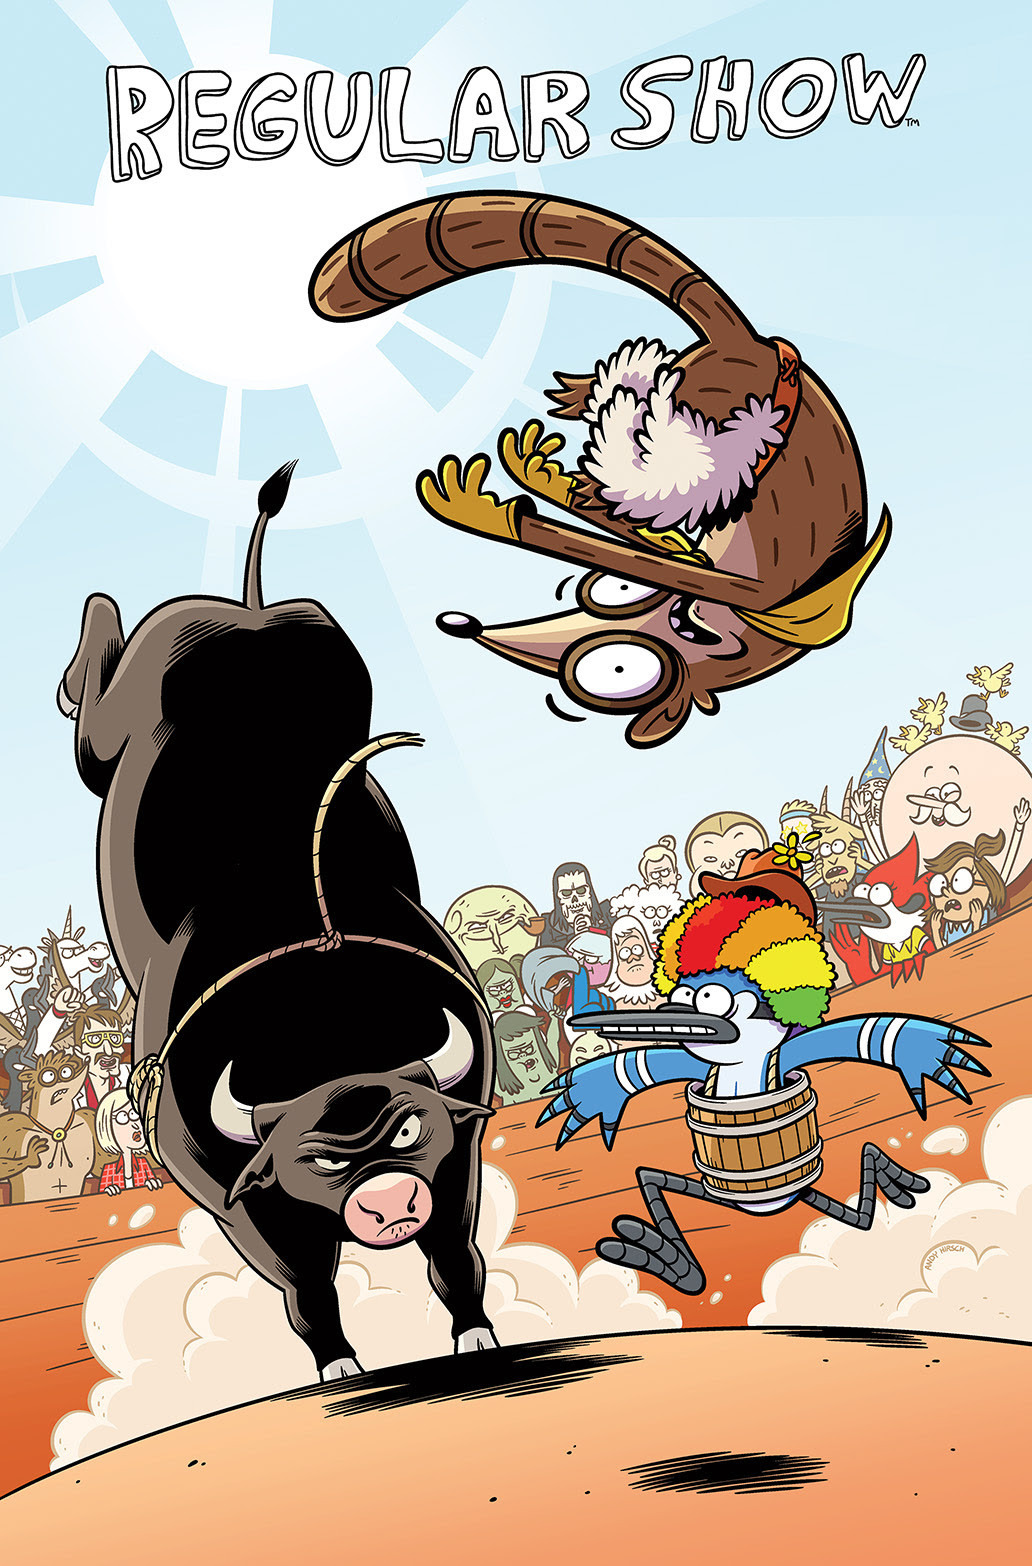 REGULAR SHOW #15 Cover A by Andy Hirsch